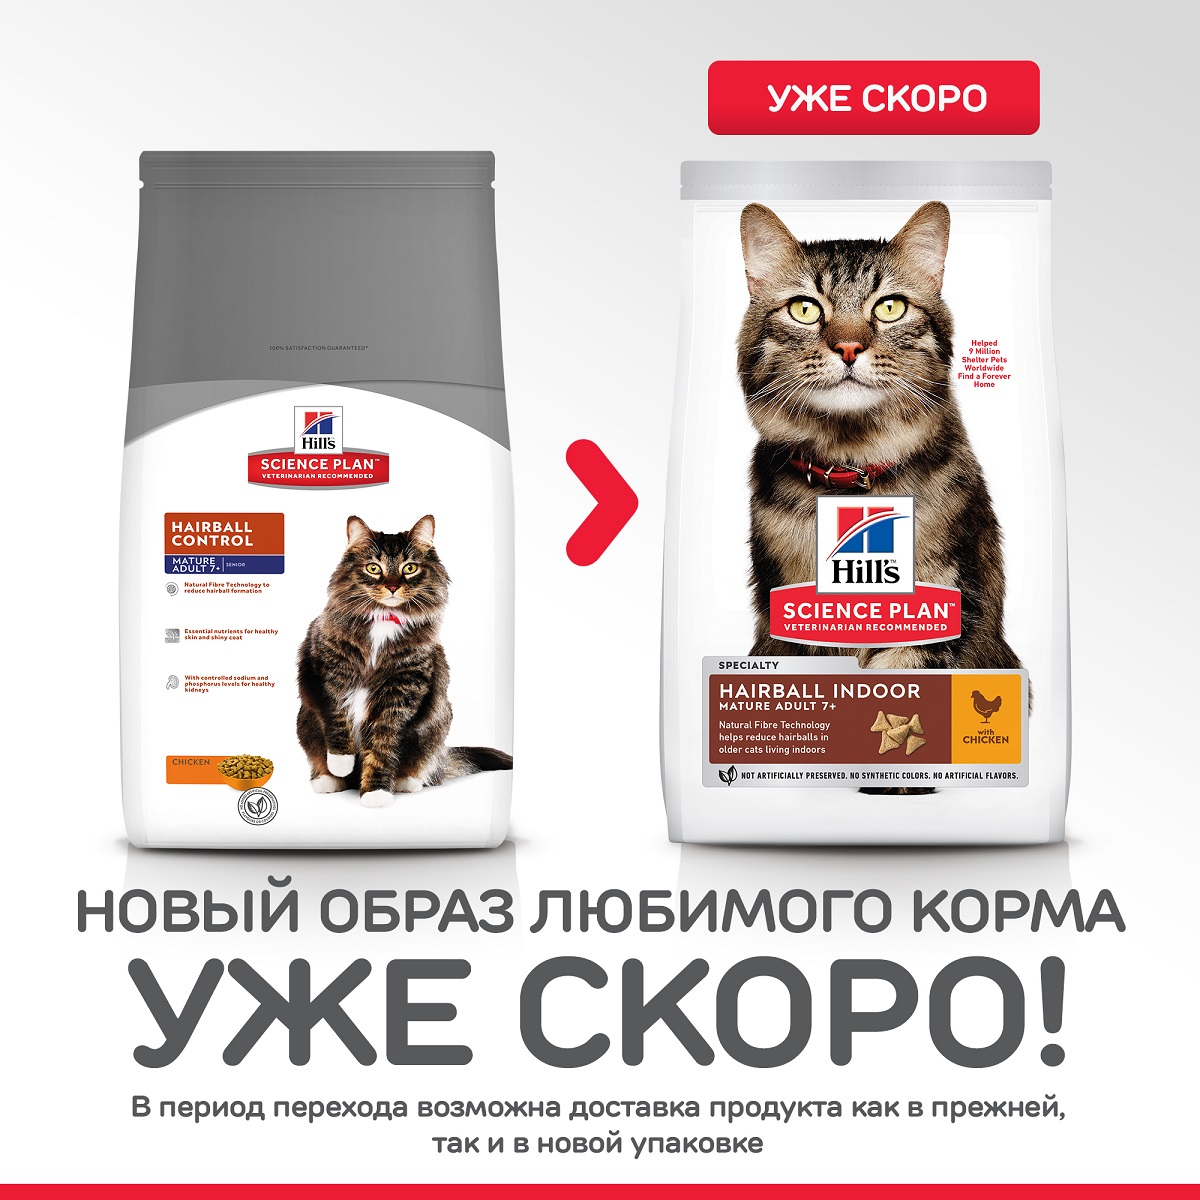 Hill's Science Plan Hairball Control 1,5 кг 50355